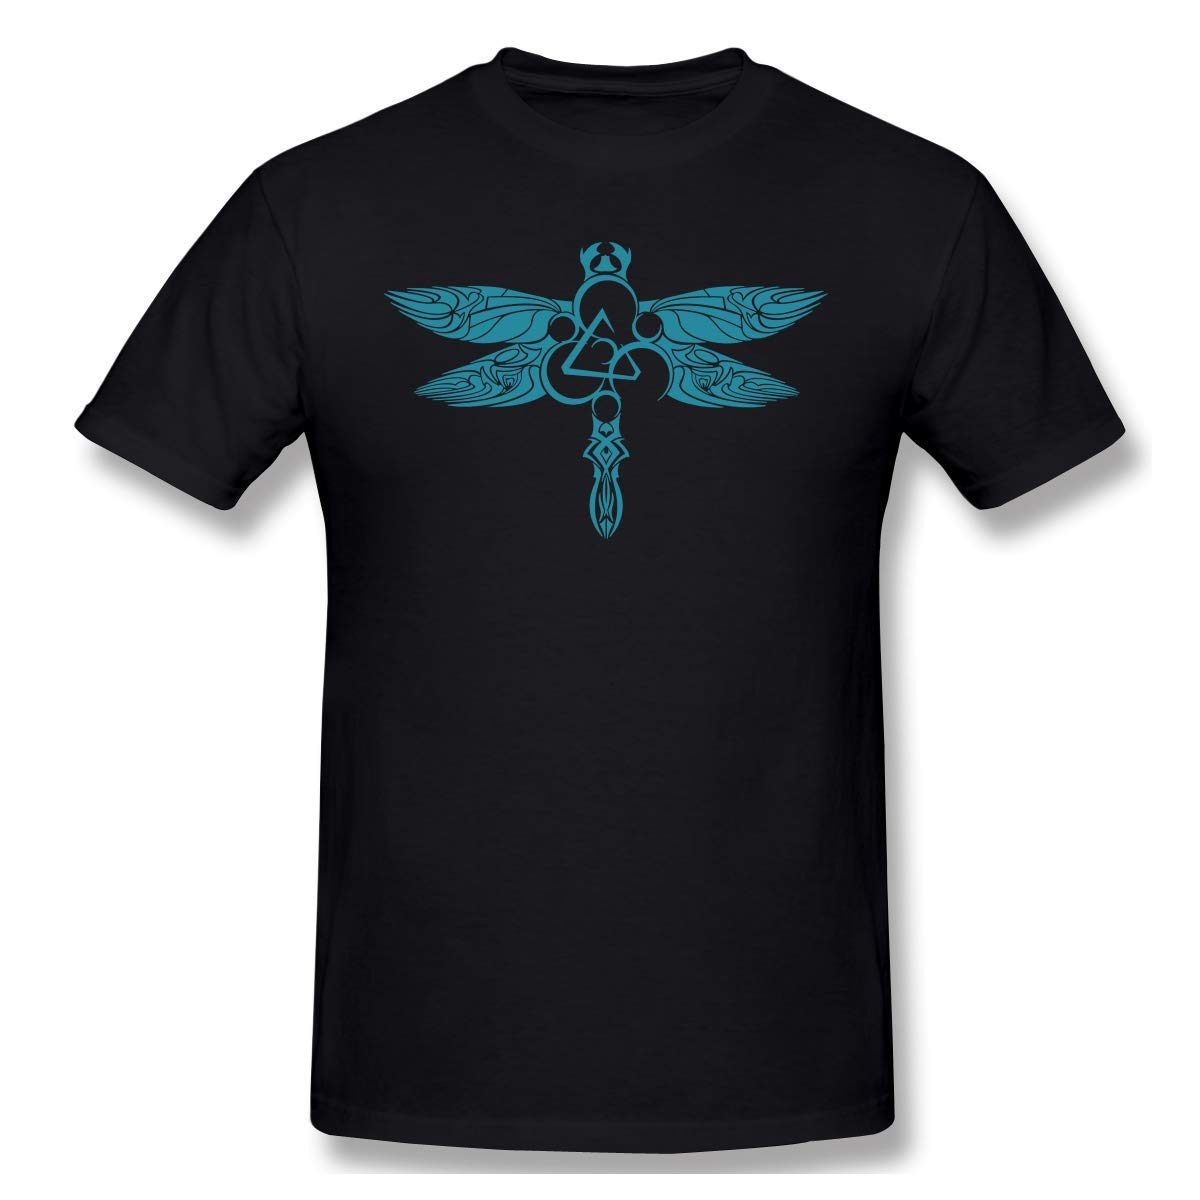 AlanSPerez Coheed and Cambria Symbol Dragonfly Men Shirt,Black,3X-Large